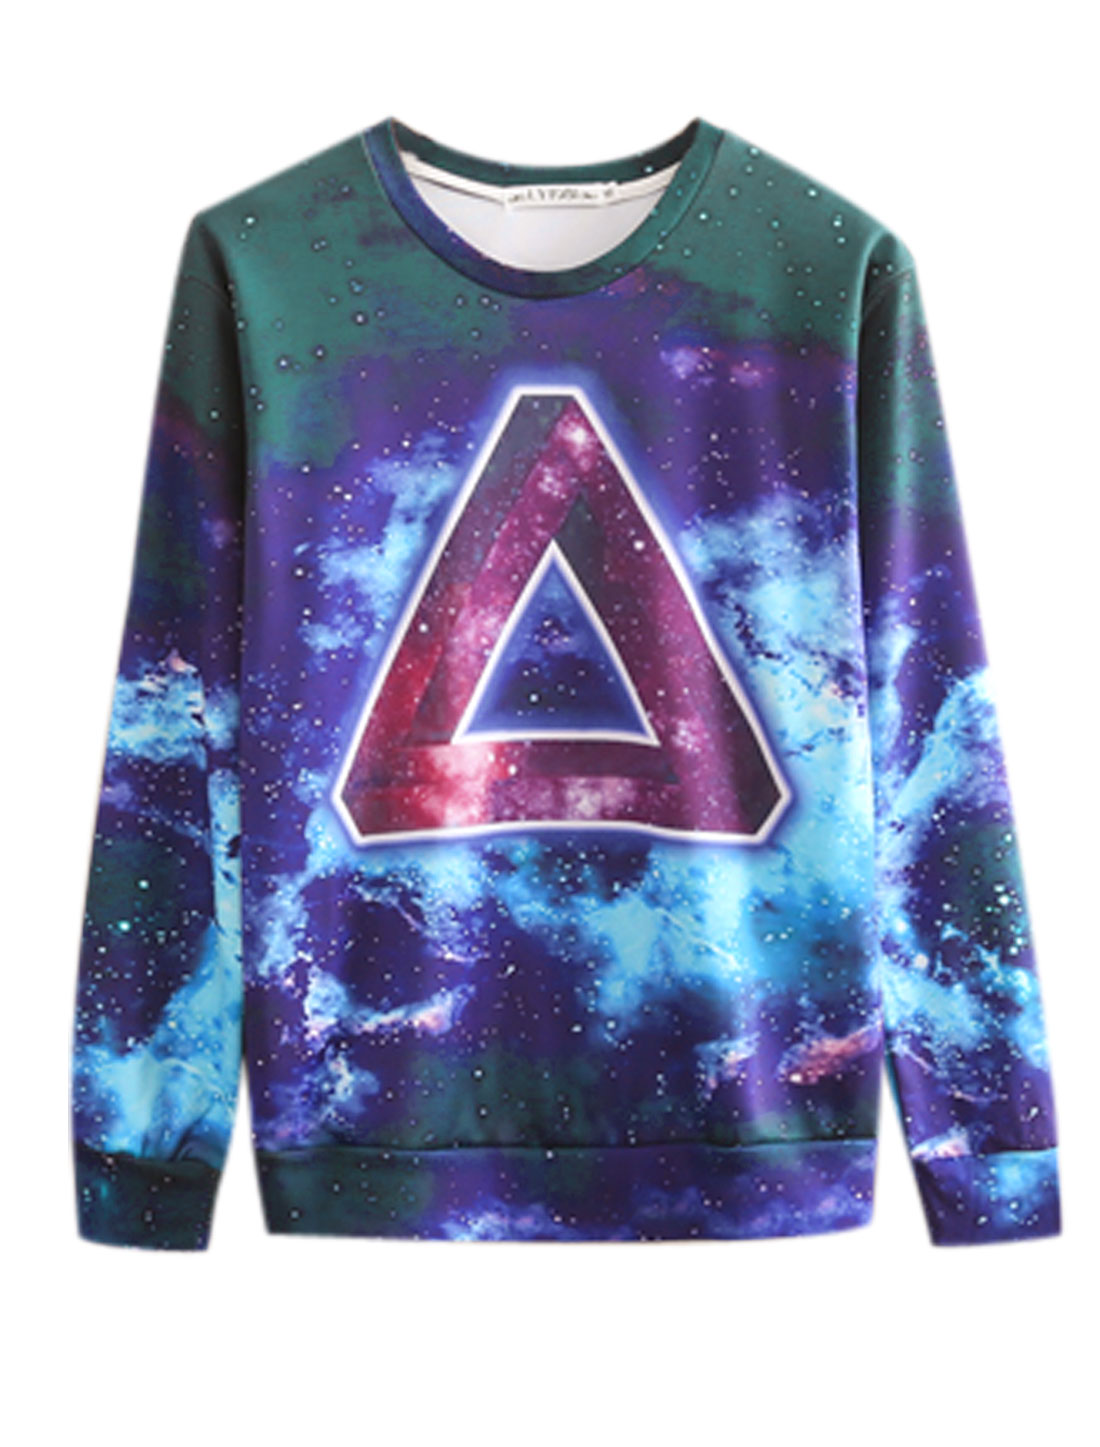 Men Long Sleeves Geometrical Galaxy Prints Chic Slipover Sweatshirt Purple M